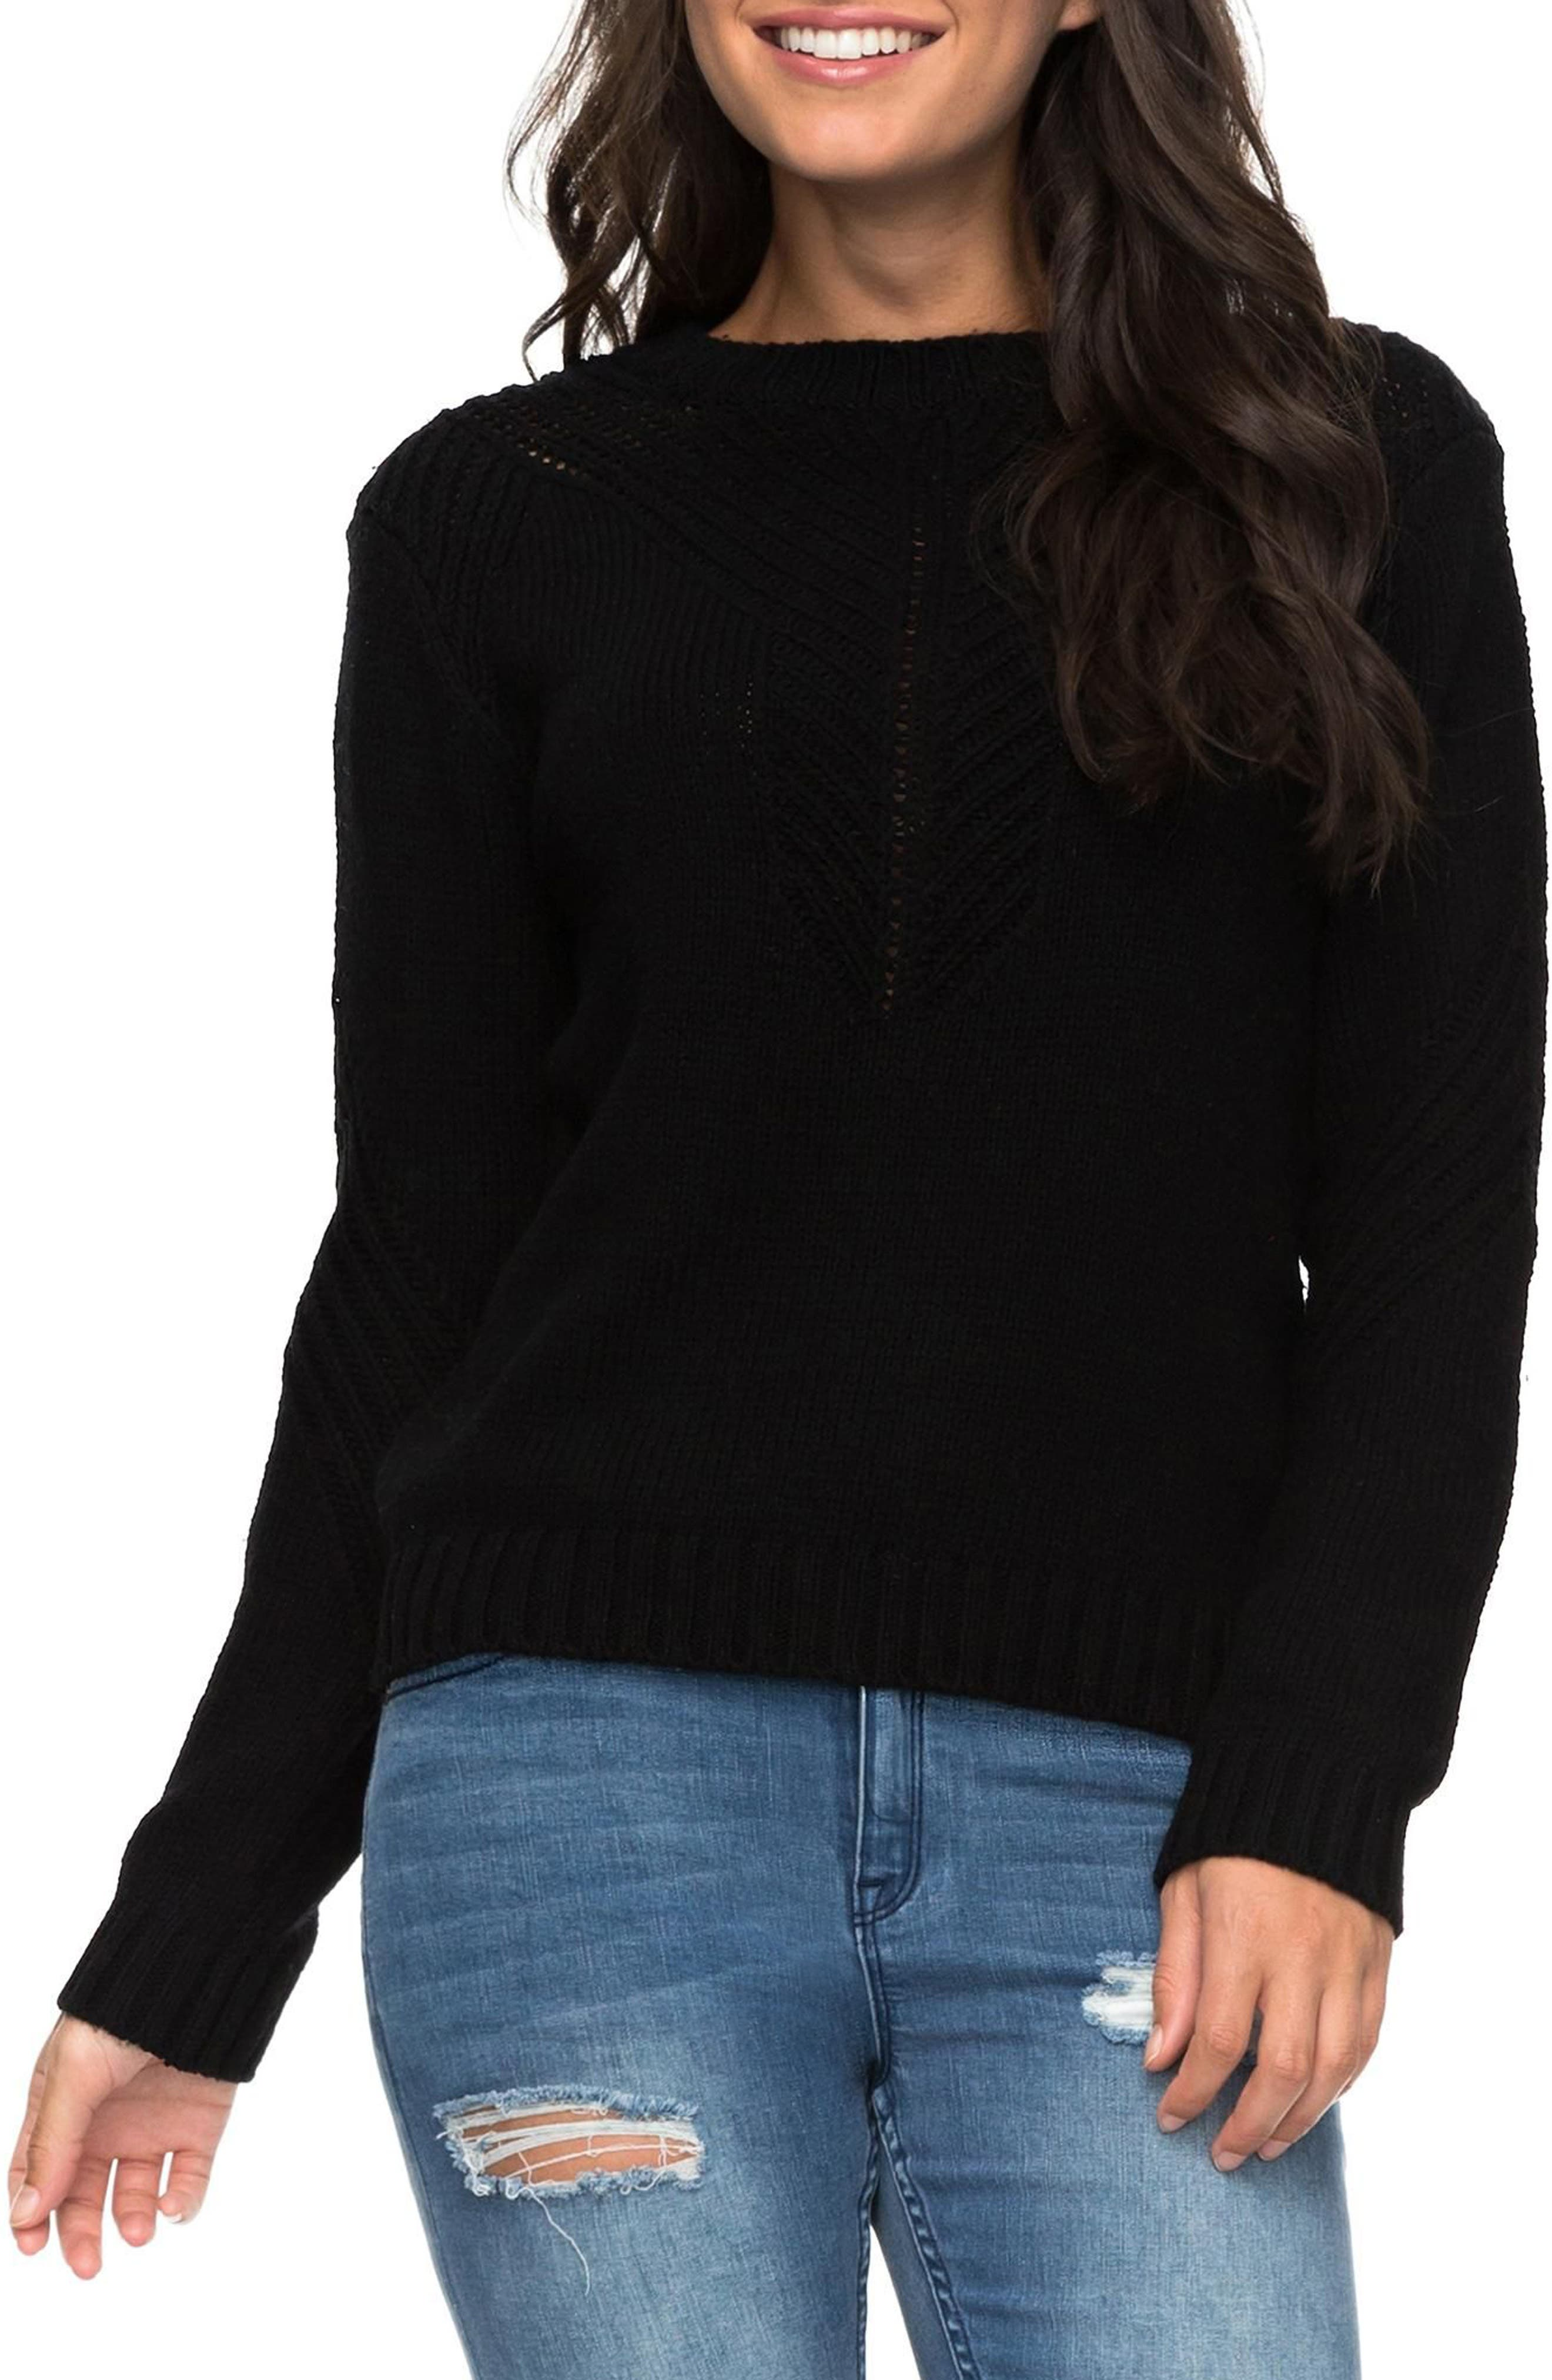 Take Over the World Sweater,                             Main thumbnail 1, color,                             Anthracite